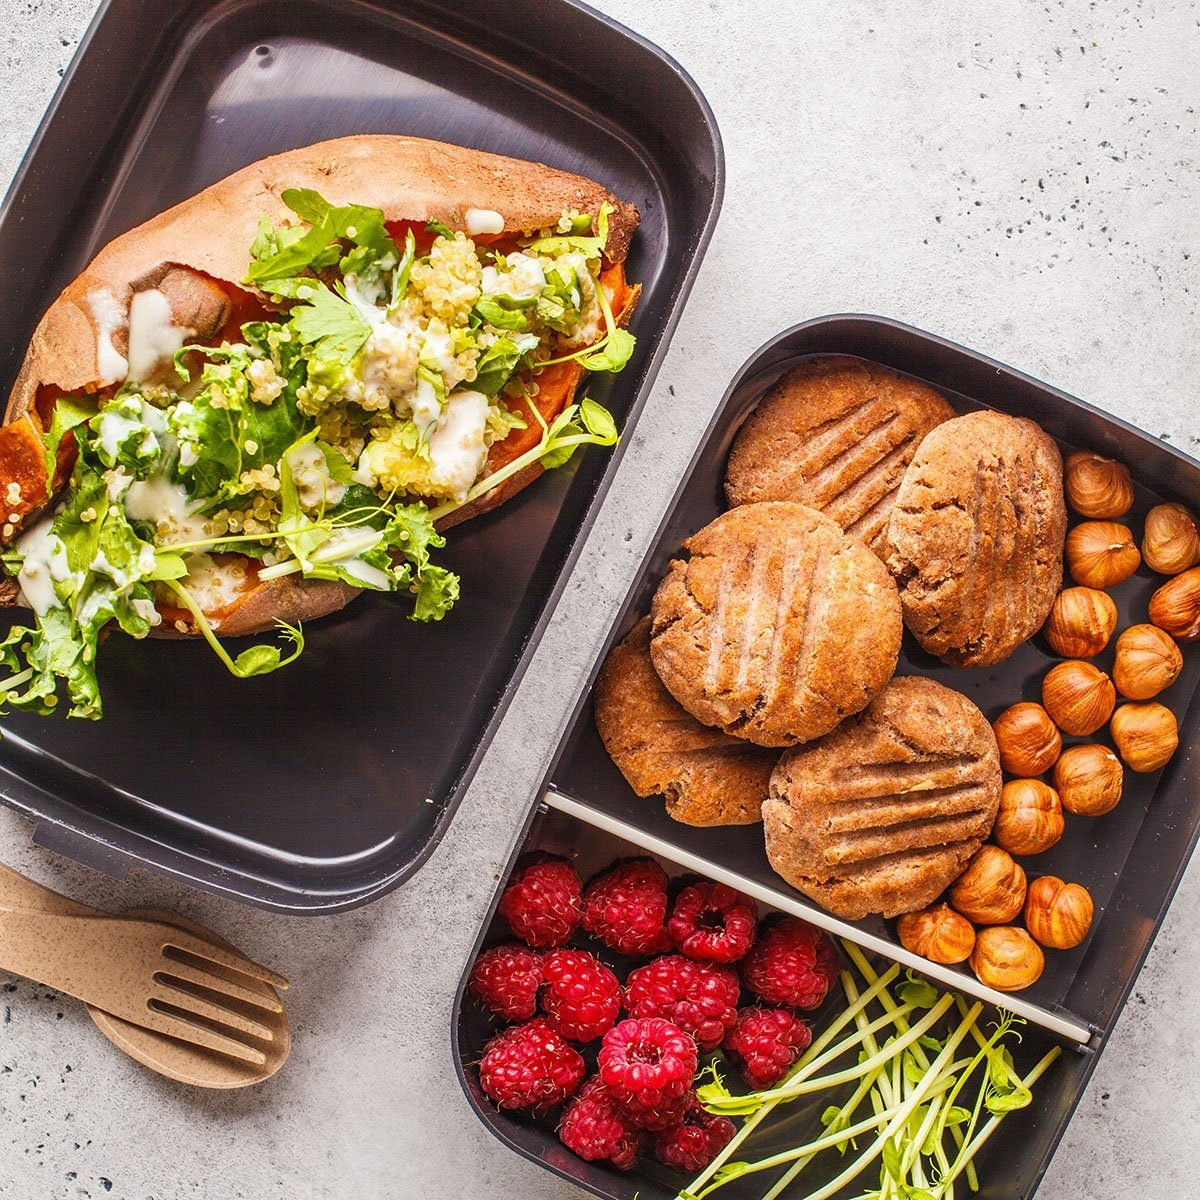 Healthy meal prep containers with quinoa Stuffed Sweet Potatoes, cookies, nuts and berries, overhead shot